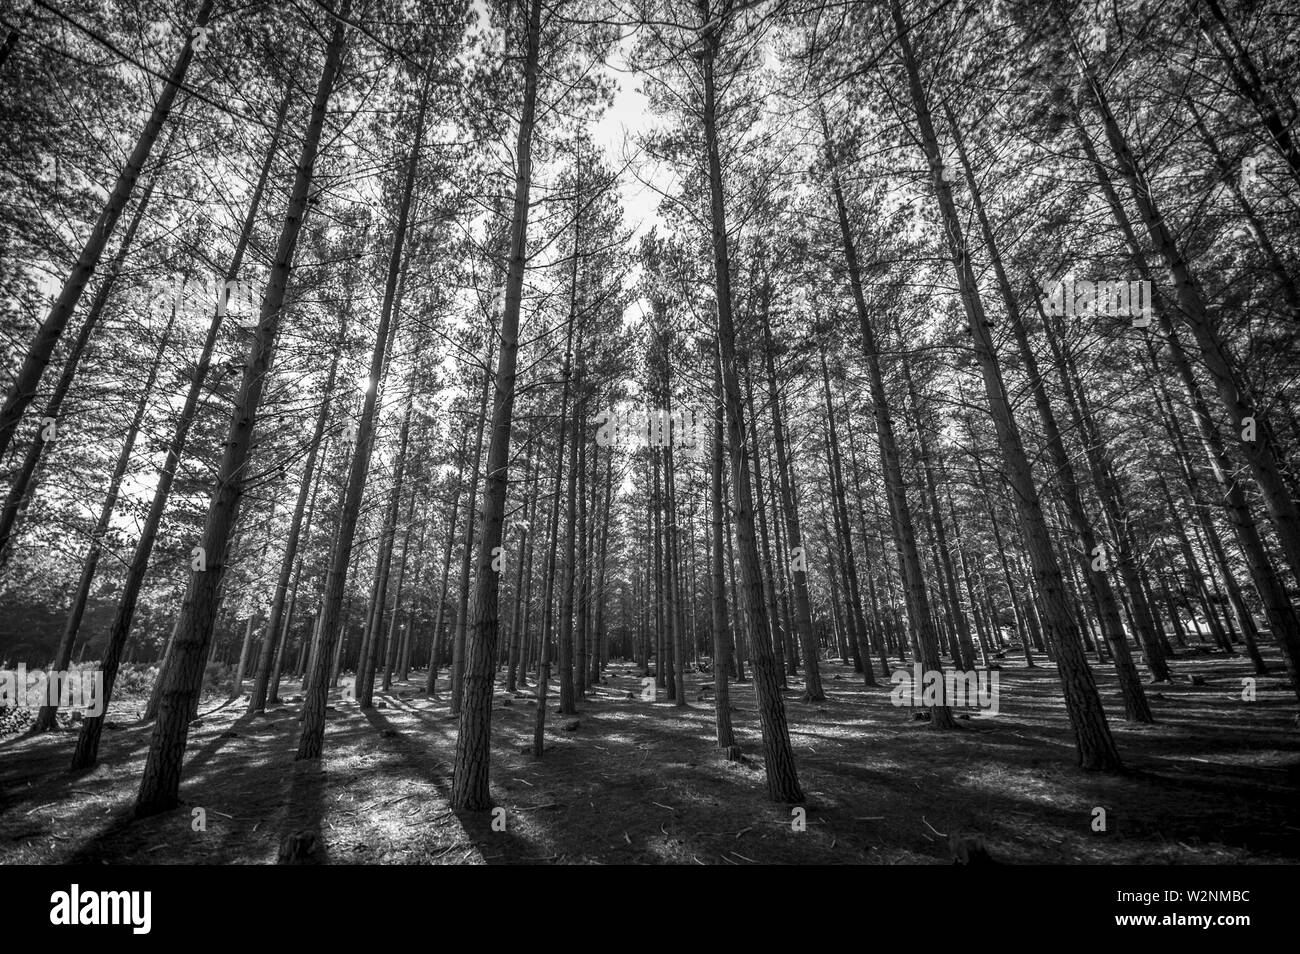 Pine ytree plantation. Shady forest. - Stock Image